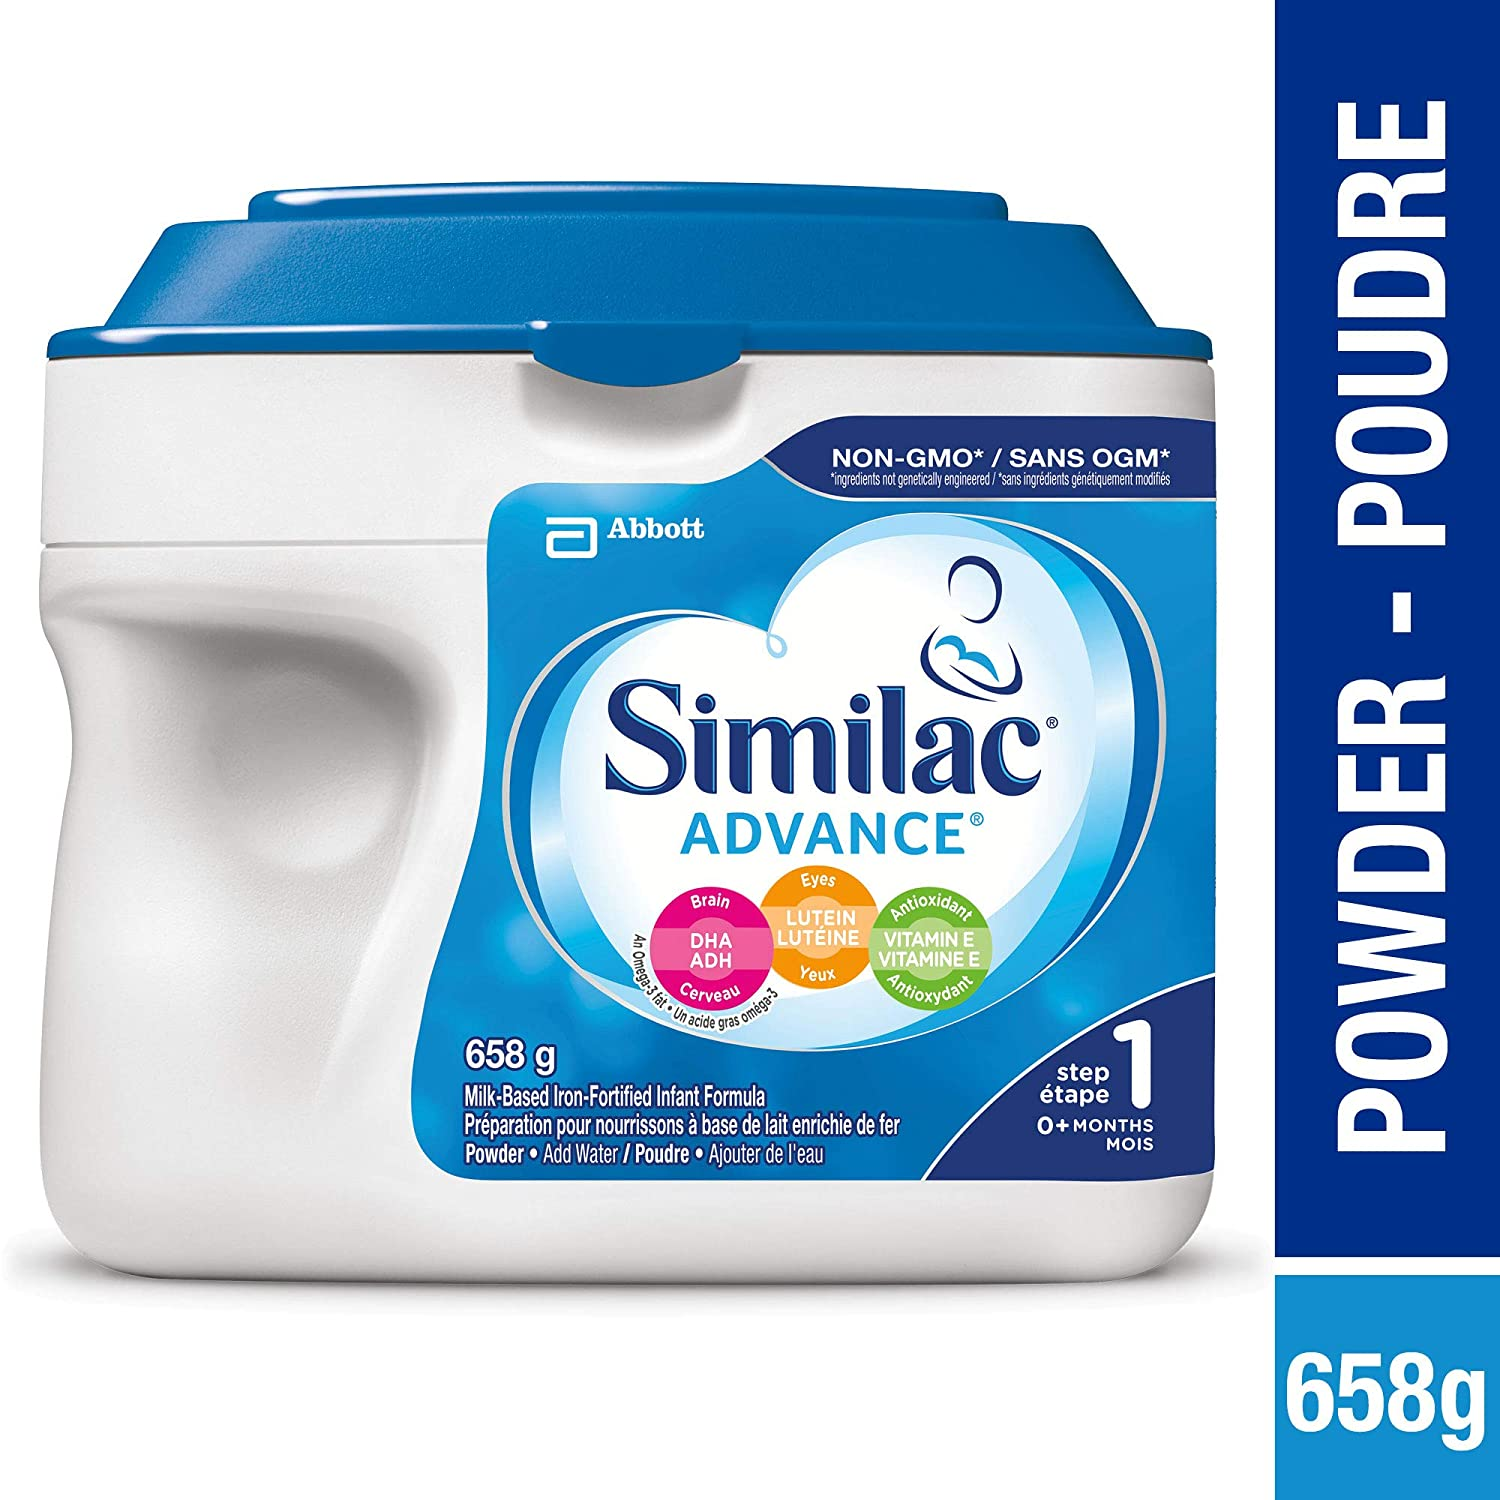 Similac Advance Step 1 Infant Formula, Powder Abbott Laboratories